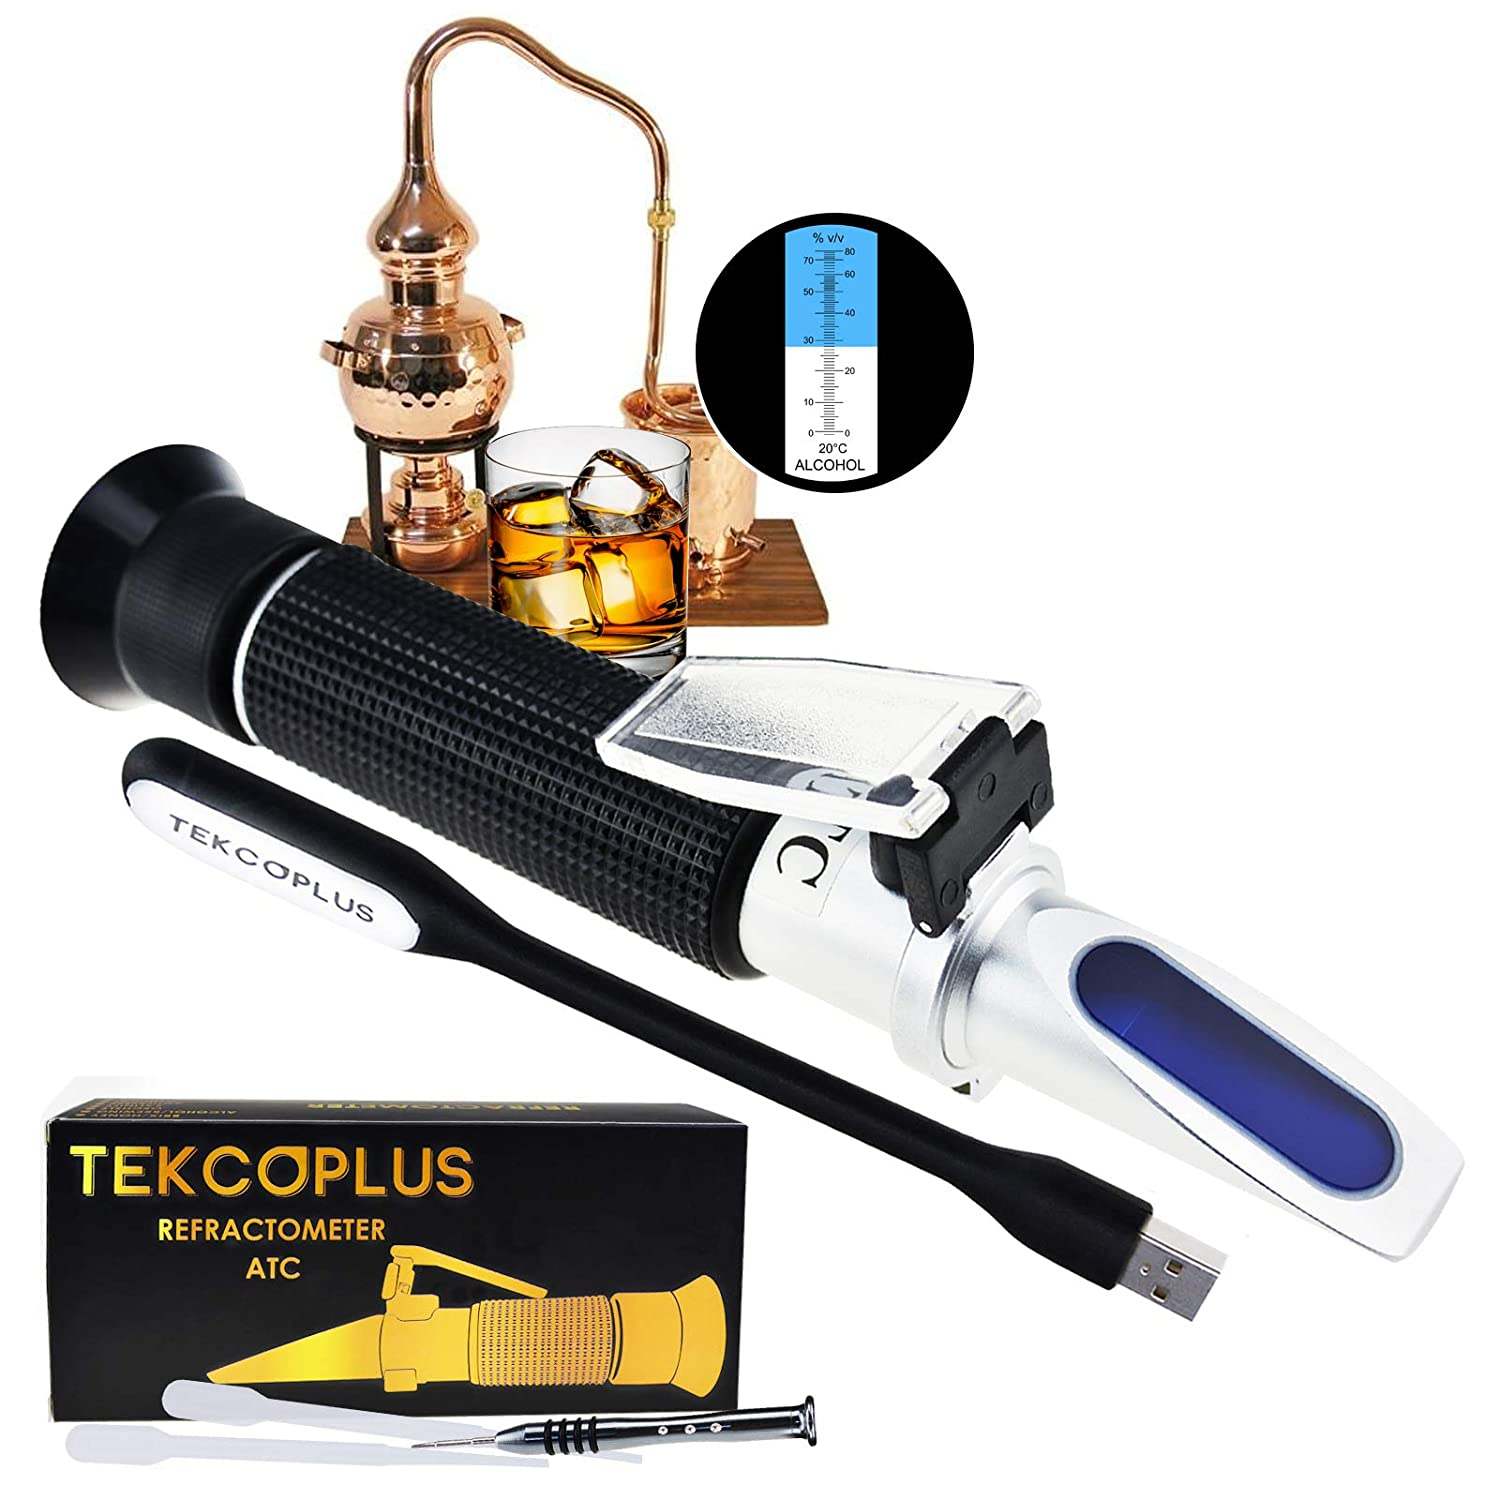 0-80% Volume Percent ATC -10-30°C Optics Alcohol Refractometer, For Alcohol Liquor production, Spirit Alcohol Measurement, Ethanol with water, Distilled beverages, Winemakers, with EXTRA LED light & pipettes TekcoPlus Ltd